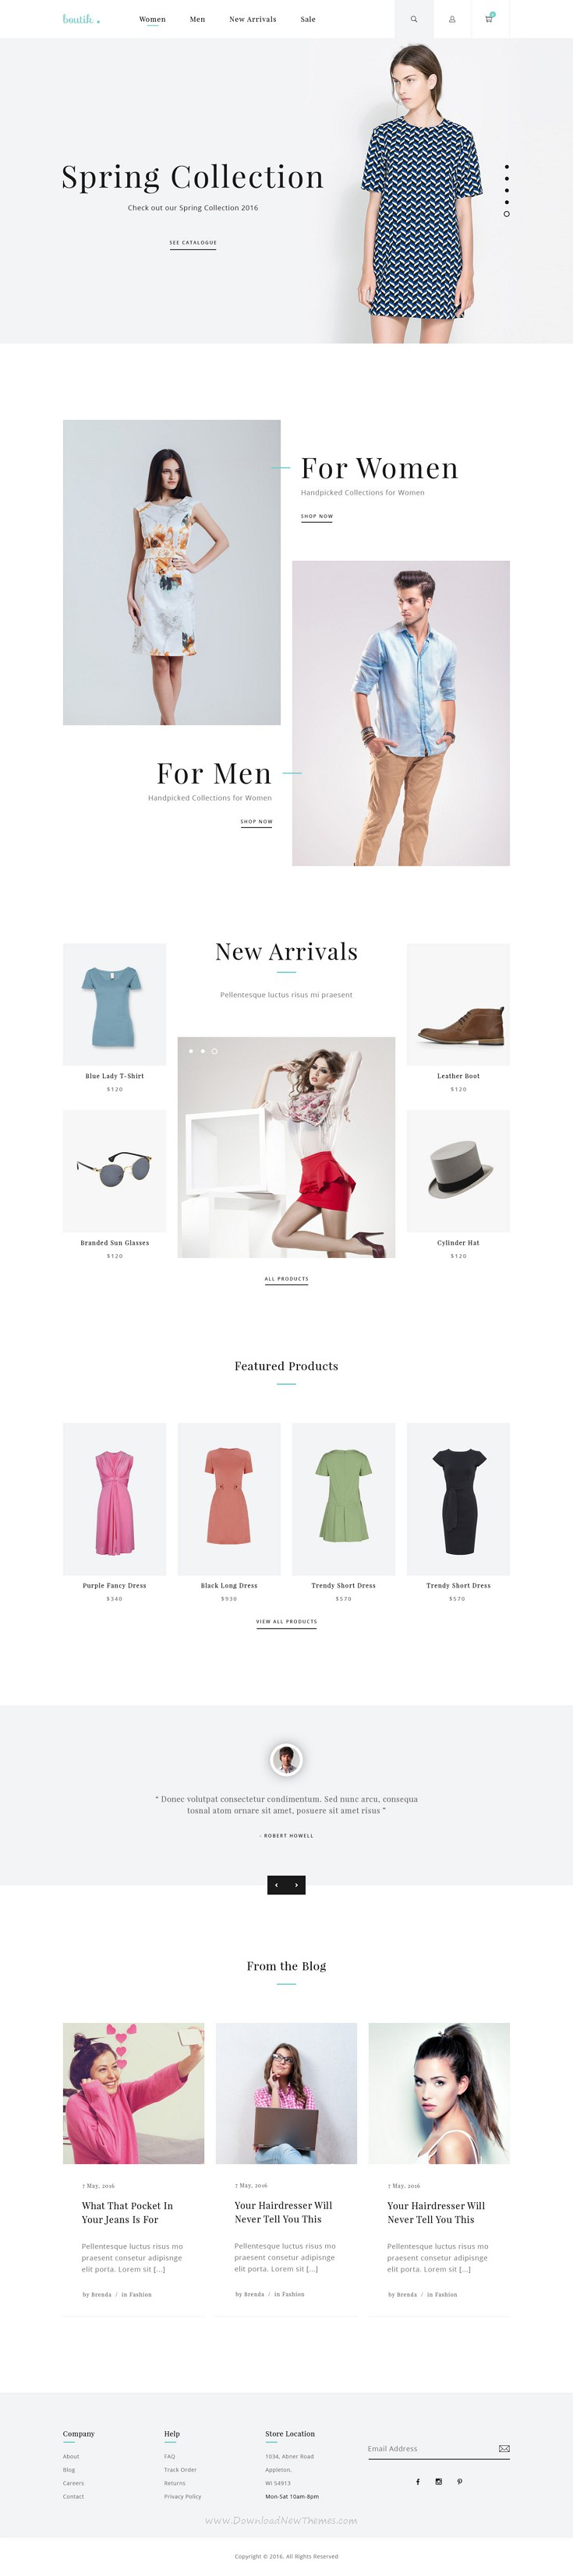 boutik fashion store psd template pinterest psd templates and